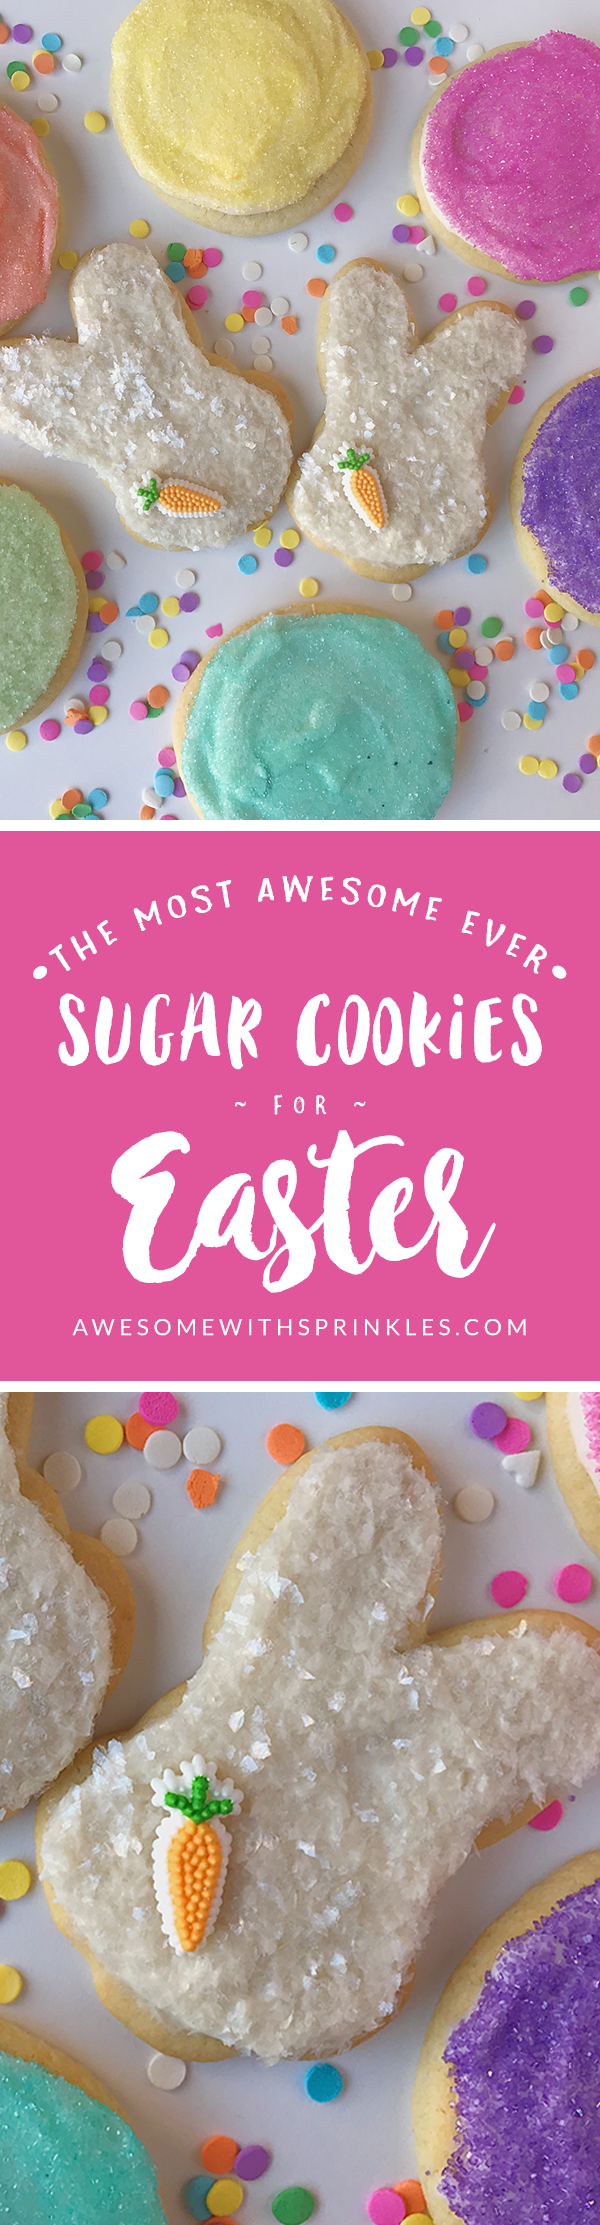 The Most Awesome Ever Sugar Cookies for Easter | Awesome with Sprinkles